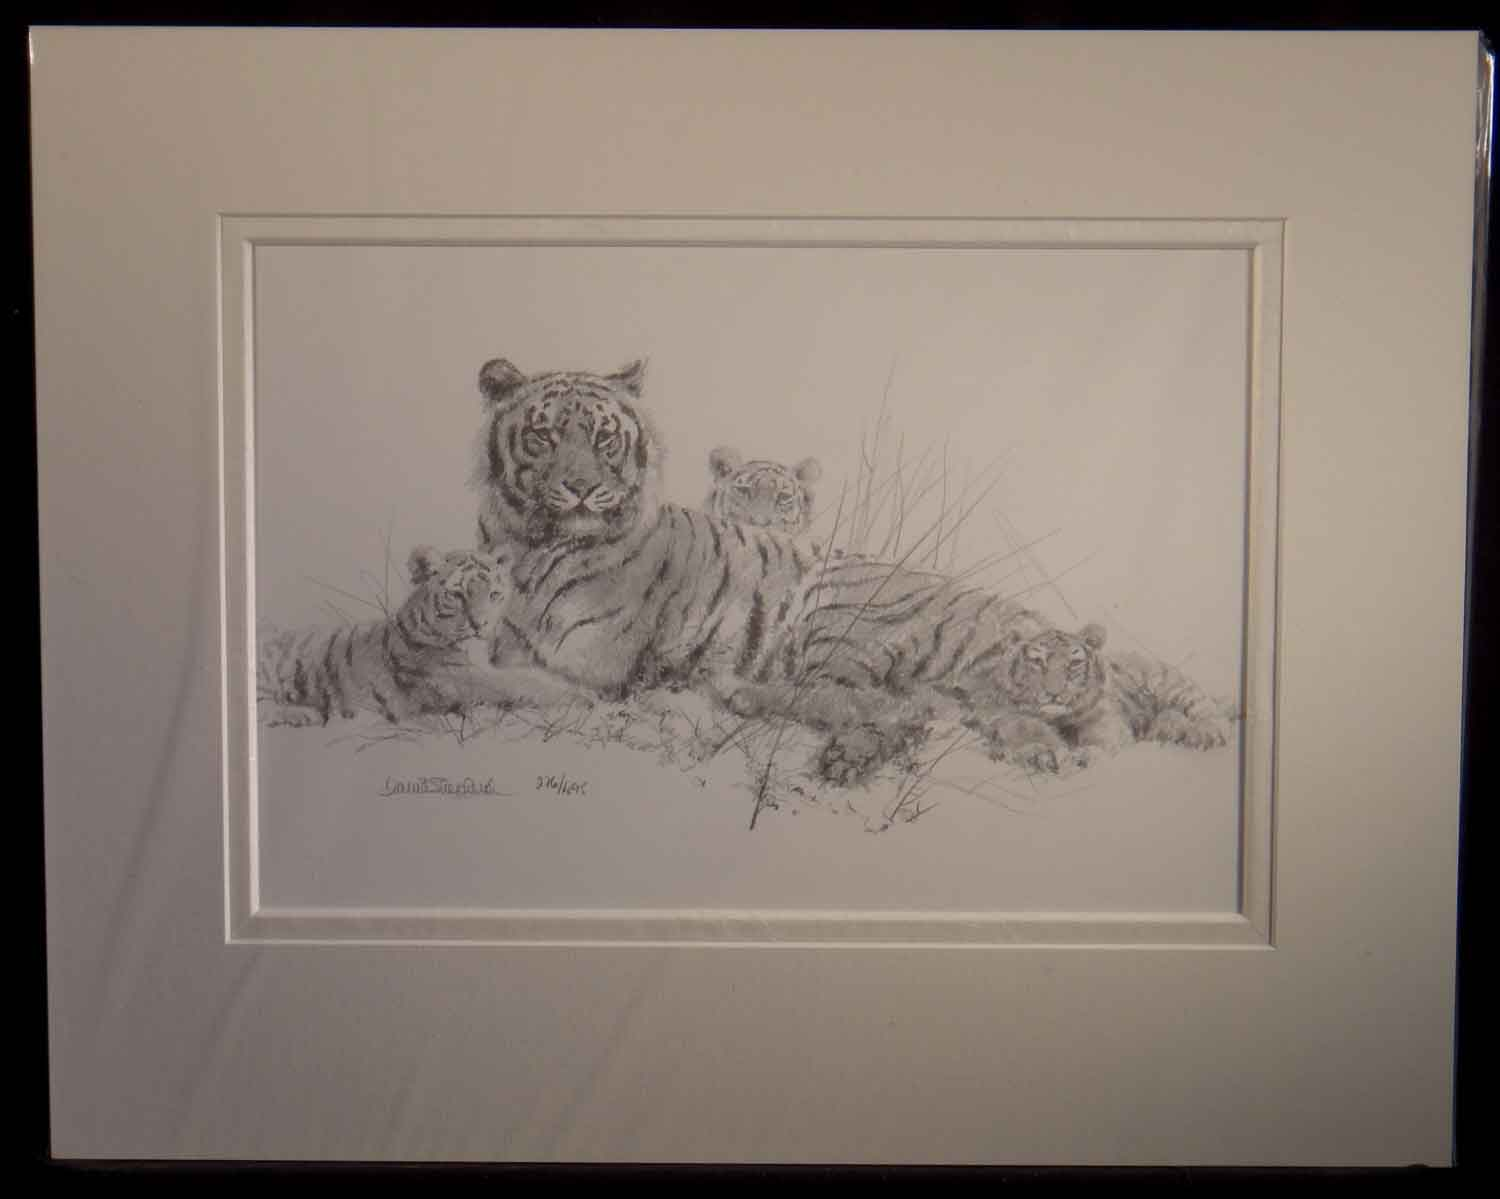 david shepherd, tigers, pencil, sketch, drawing